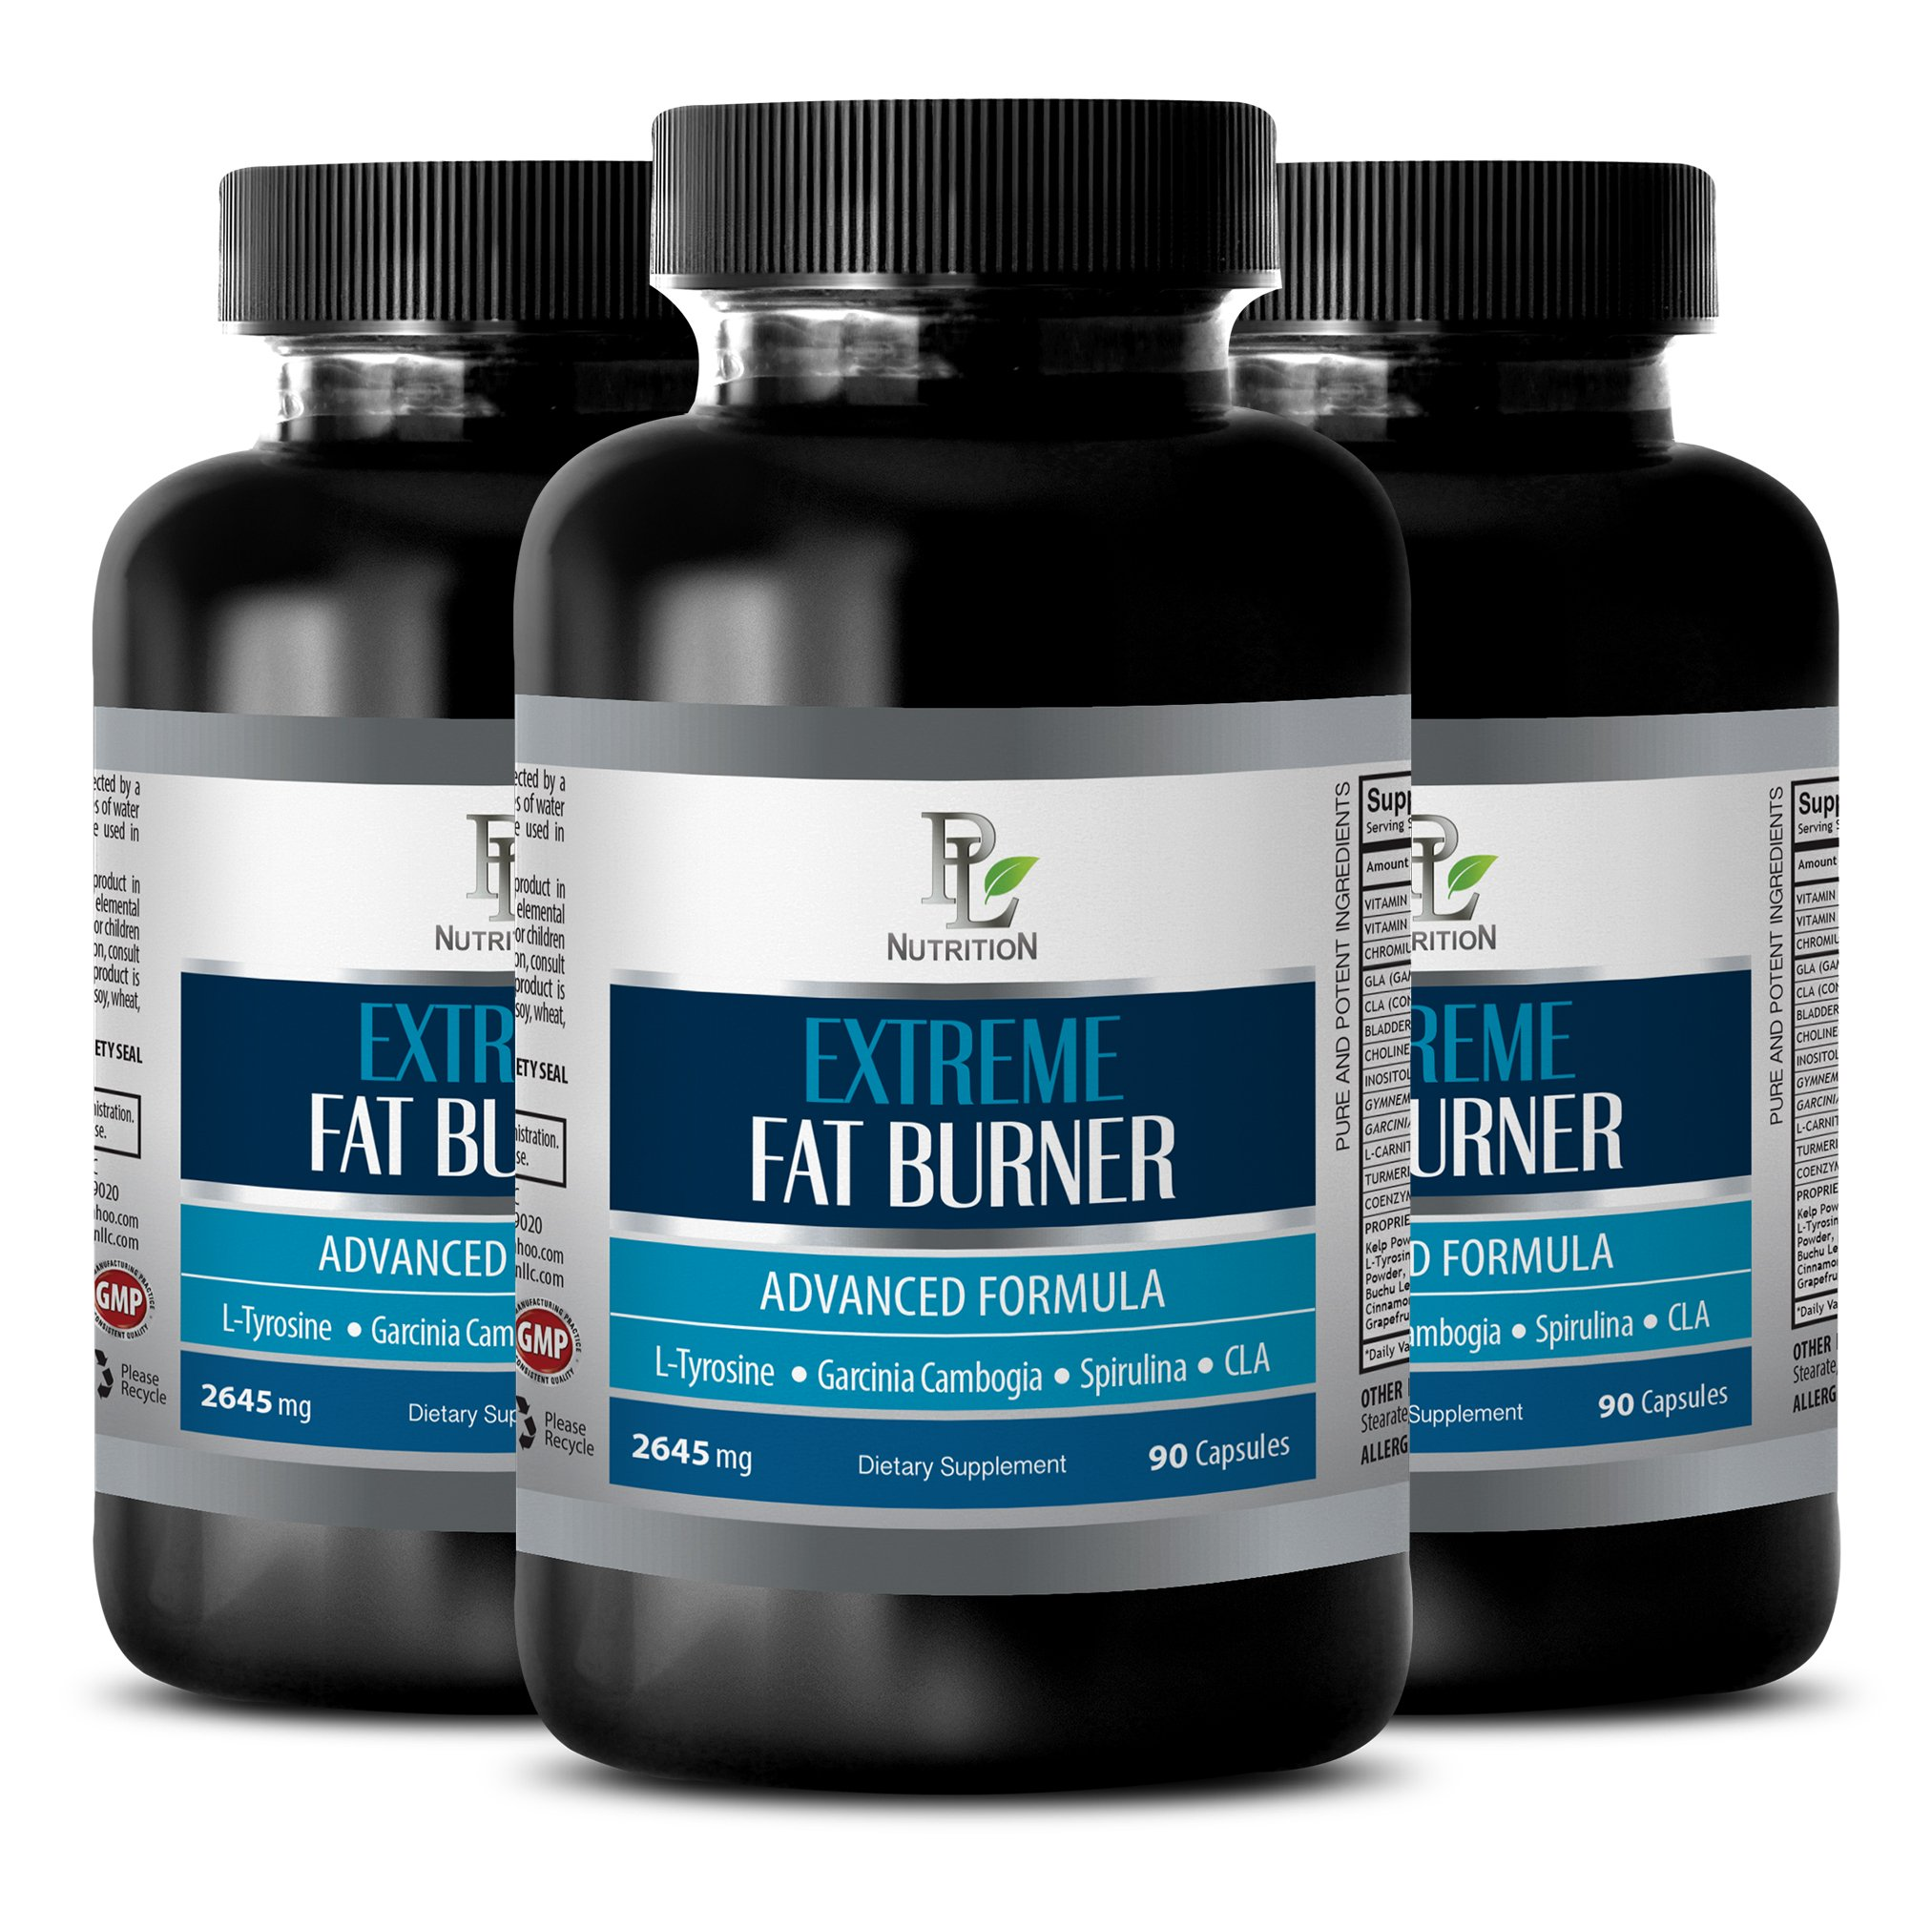 immune system dietary supplement - EXTREME FAT BURNER - 2645MG - energy and metabolism - 3 Bottles (270 Capsules)